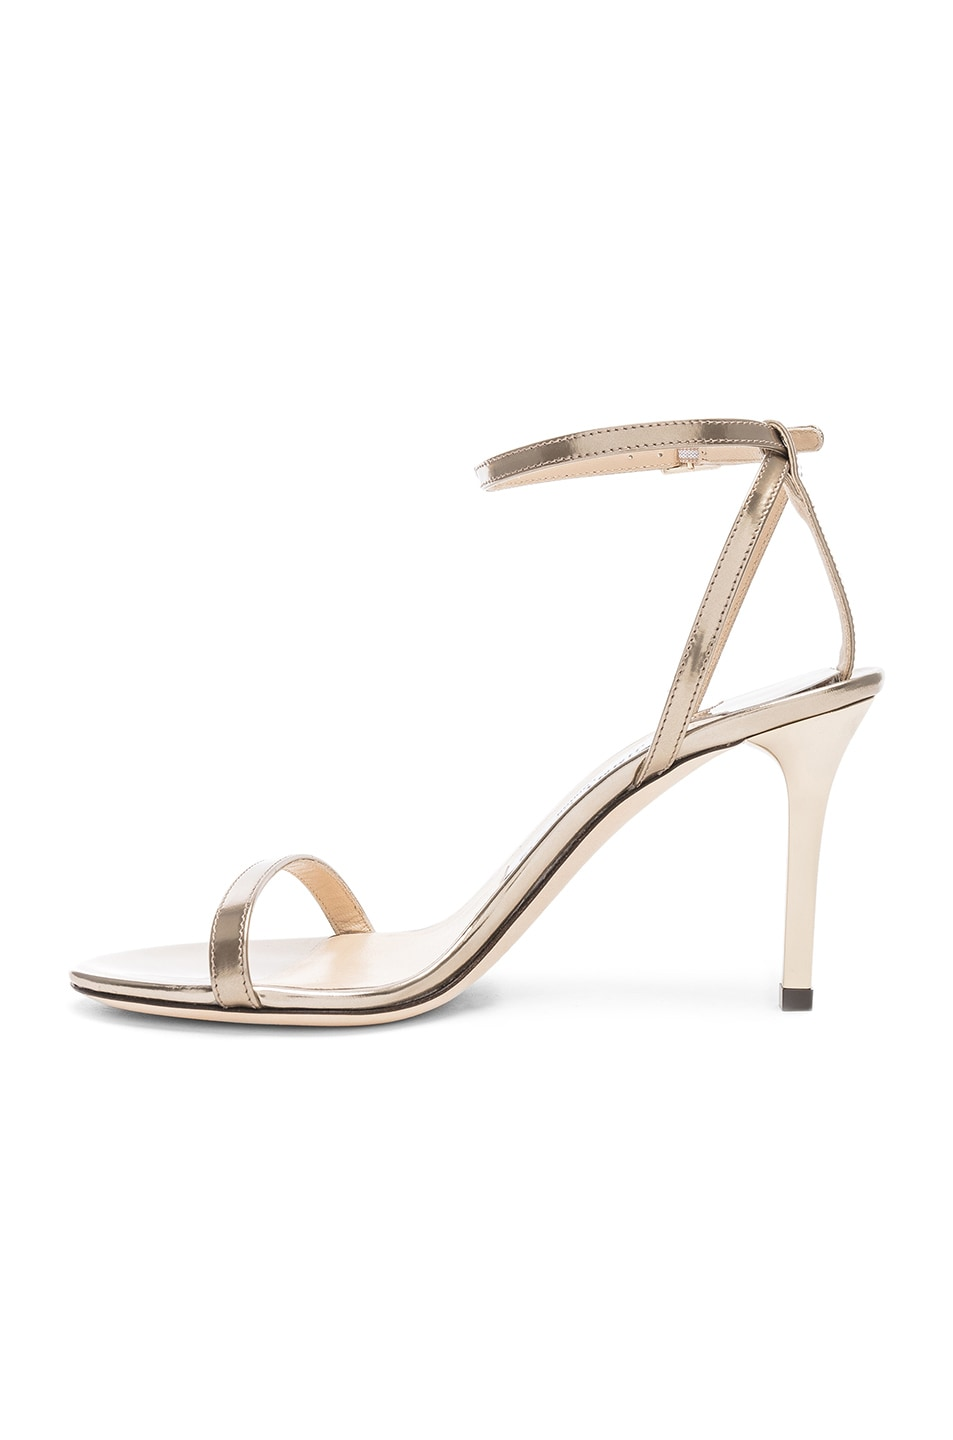 Image 5 of Jimmy Choo Minny 85 Mirror Leather Sandal in Gold